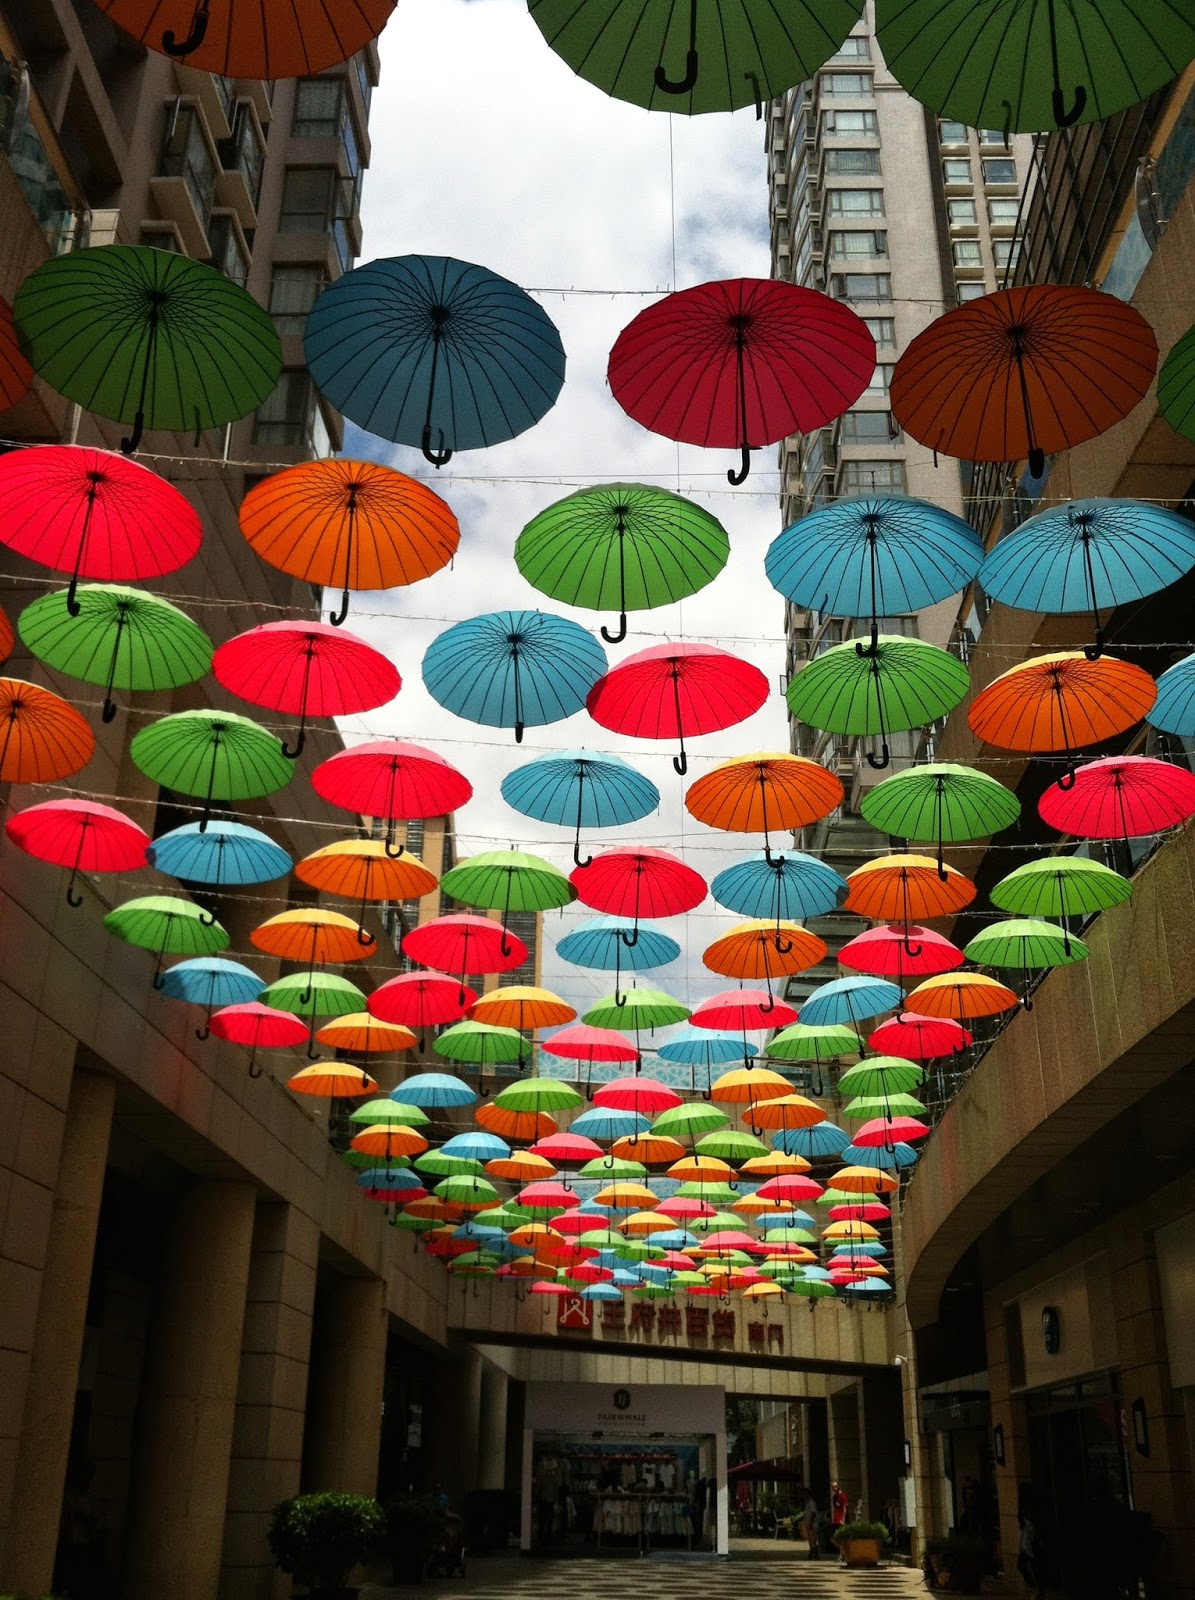 Umbrellas in Kunming